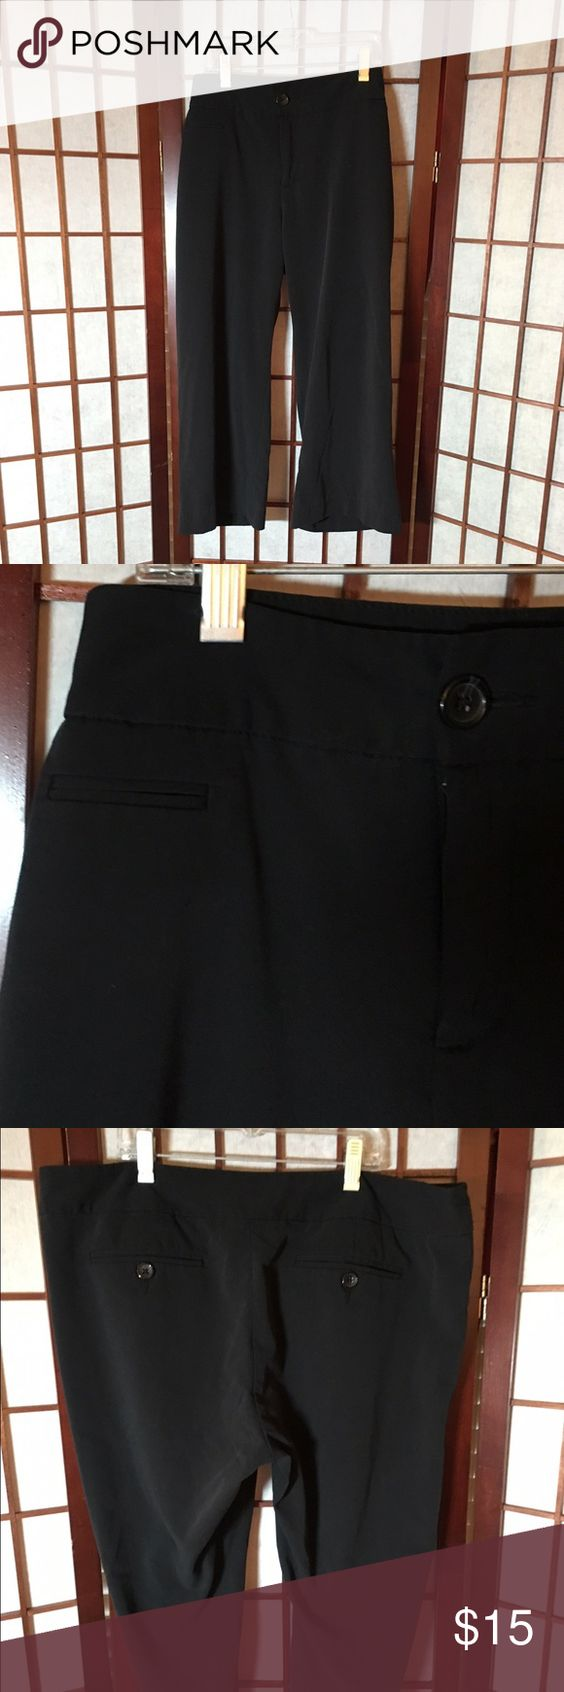 REDUCED**Black Dressy Capris | Capri, Pants and Mossimo supply co